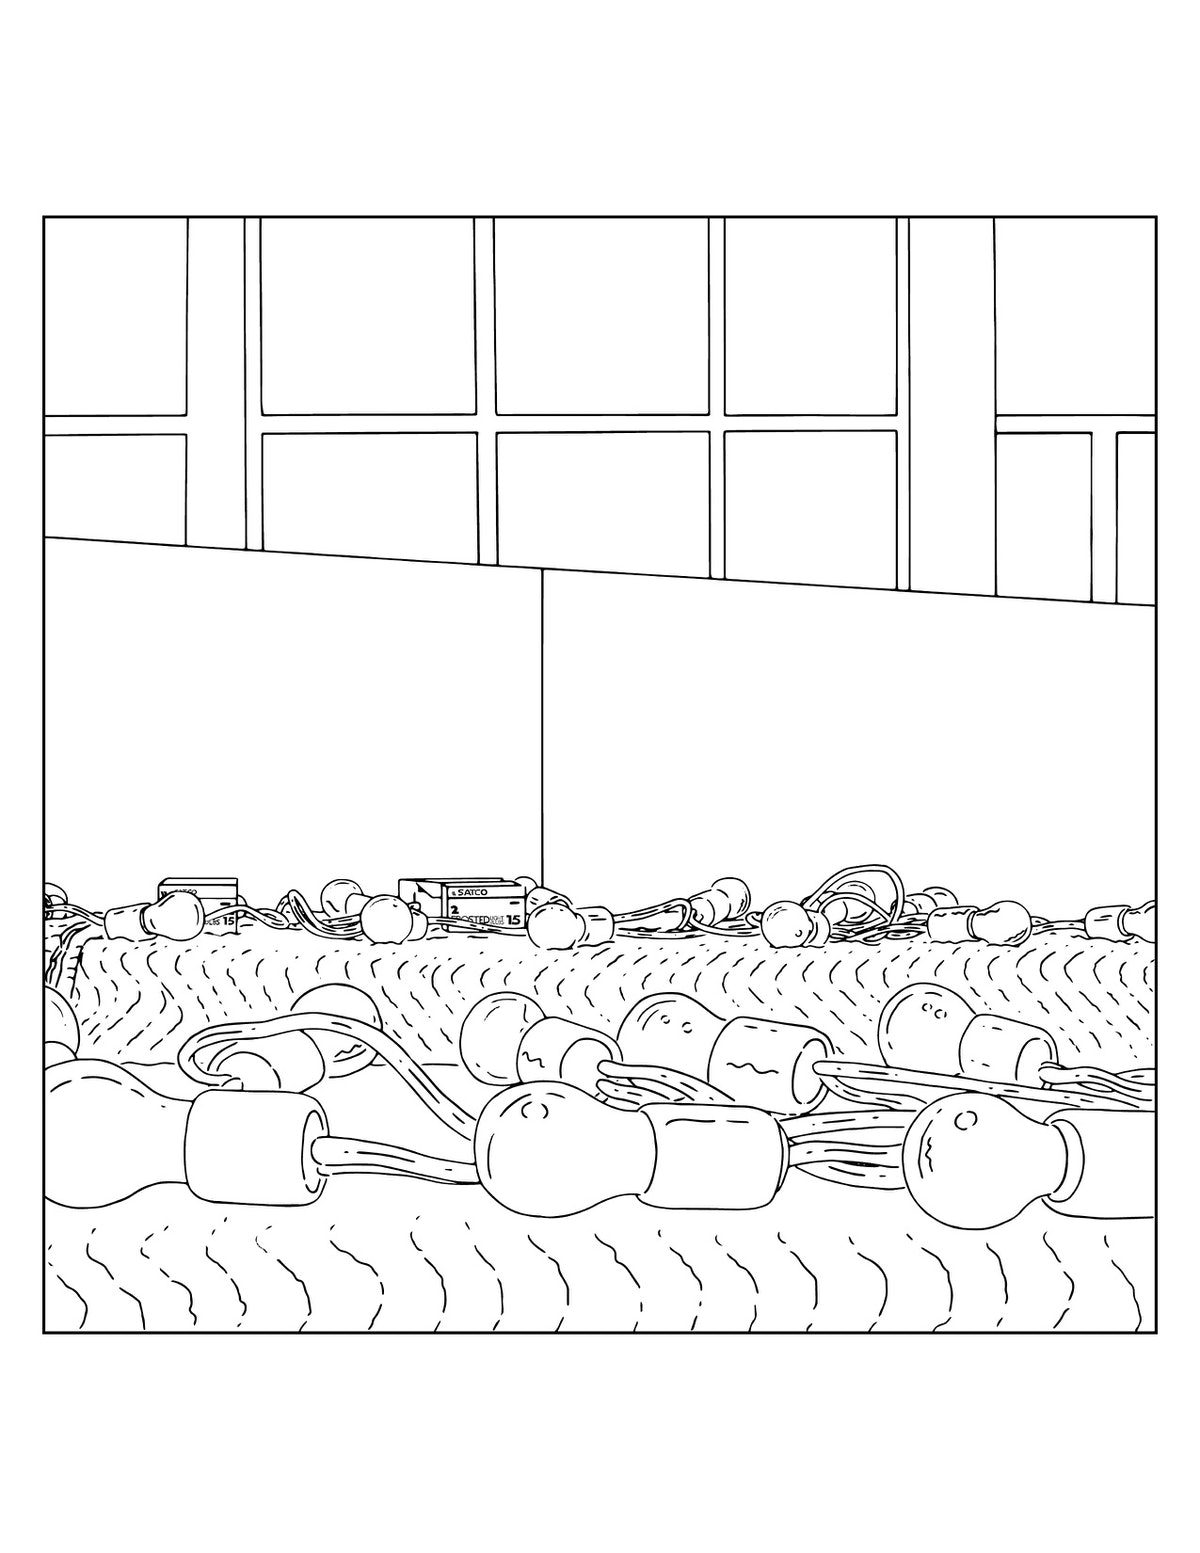 A page from a Louis Lawler coloring book